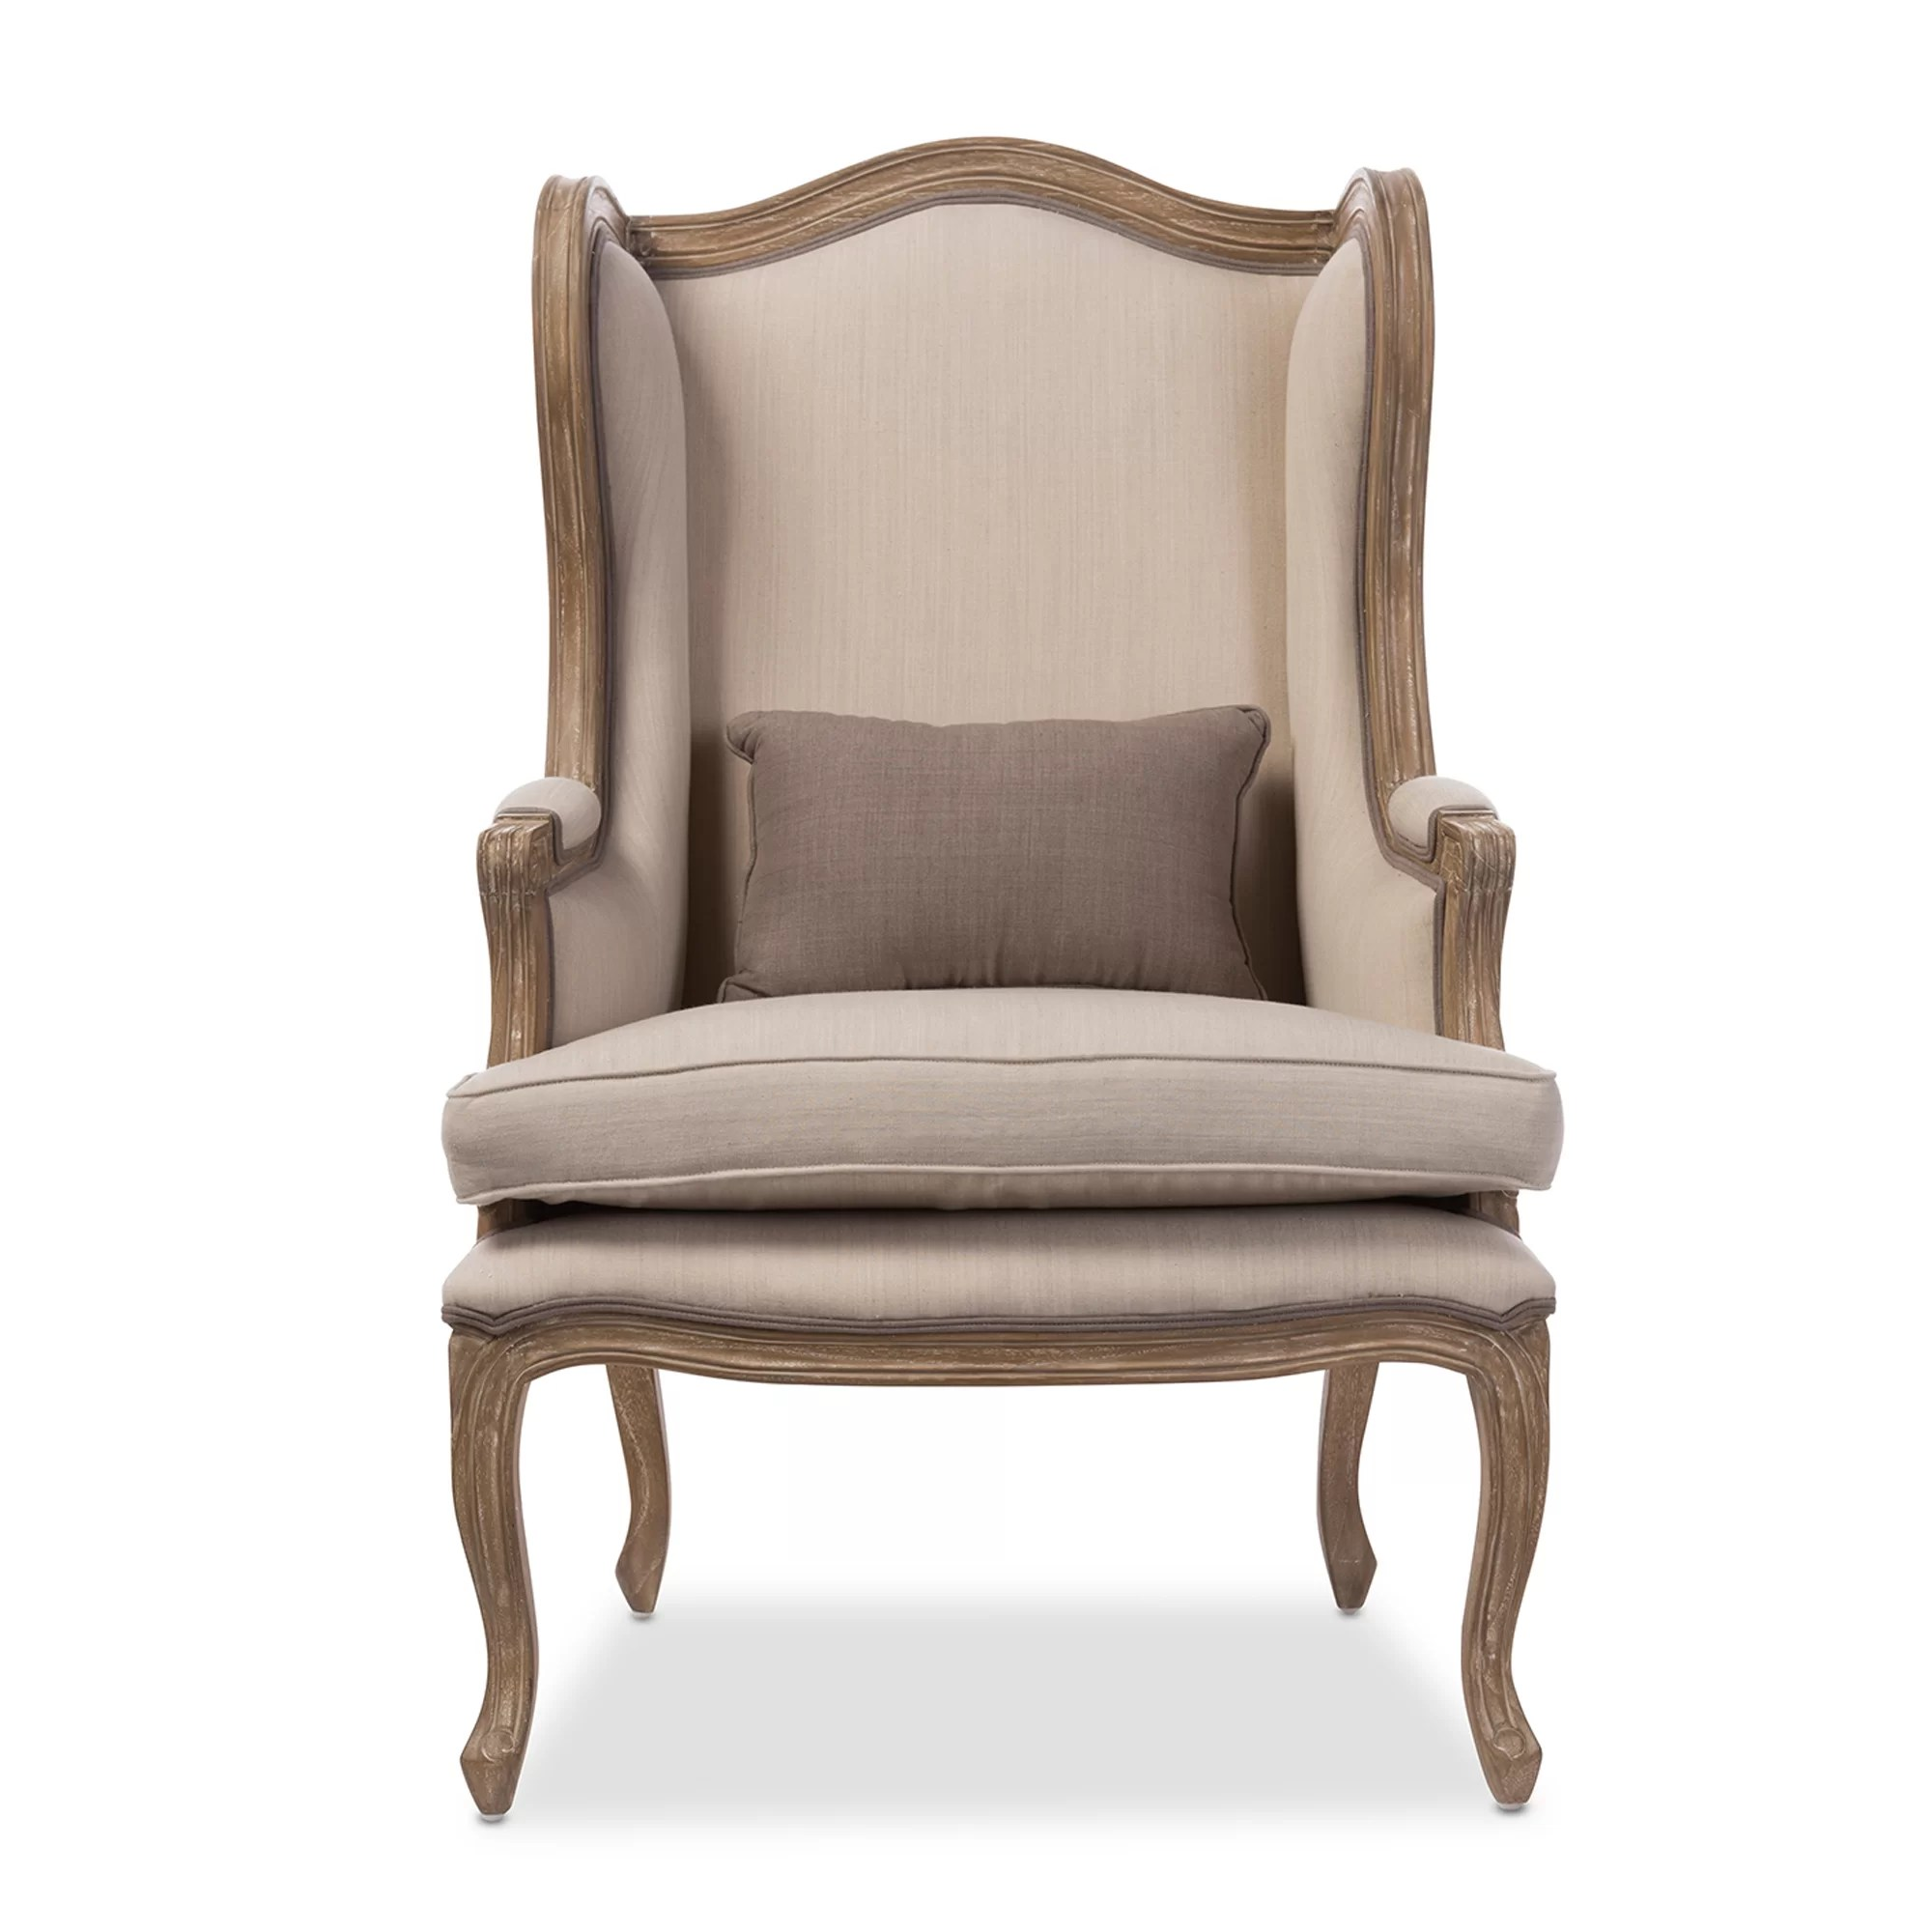 french provincial adele occasional chair t4 spa jet wholesale interiors oreille style